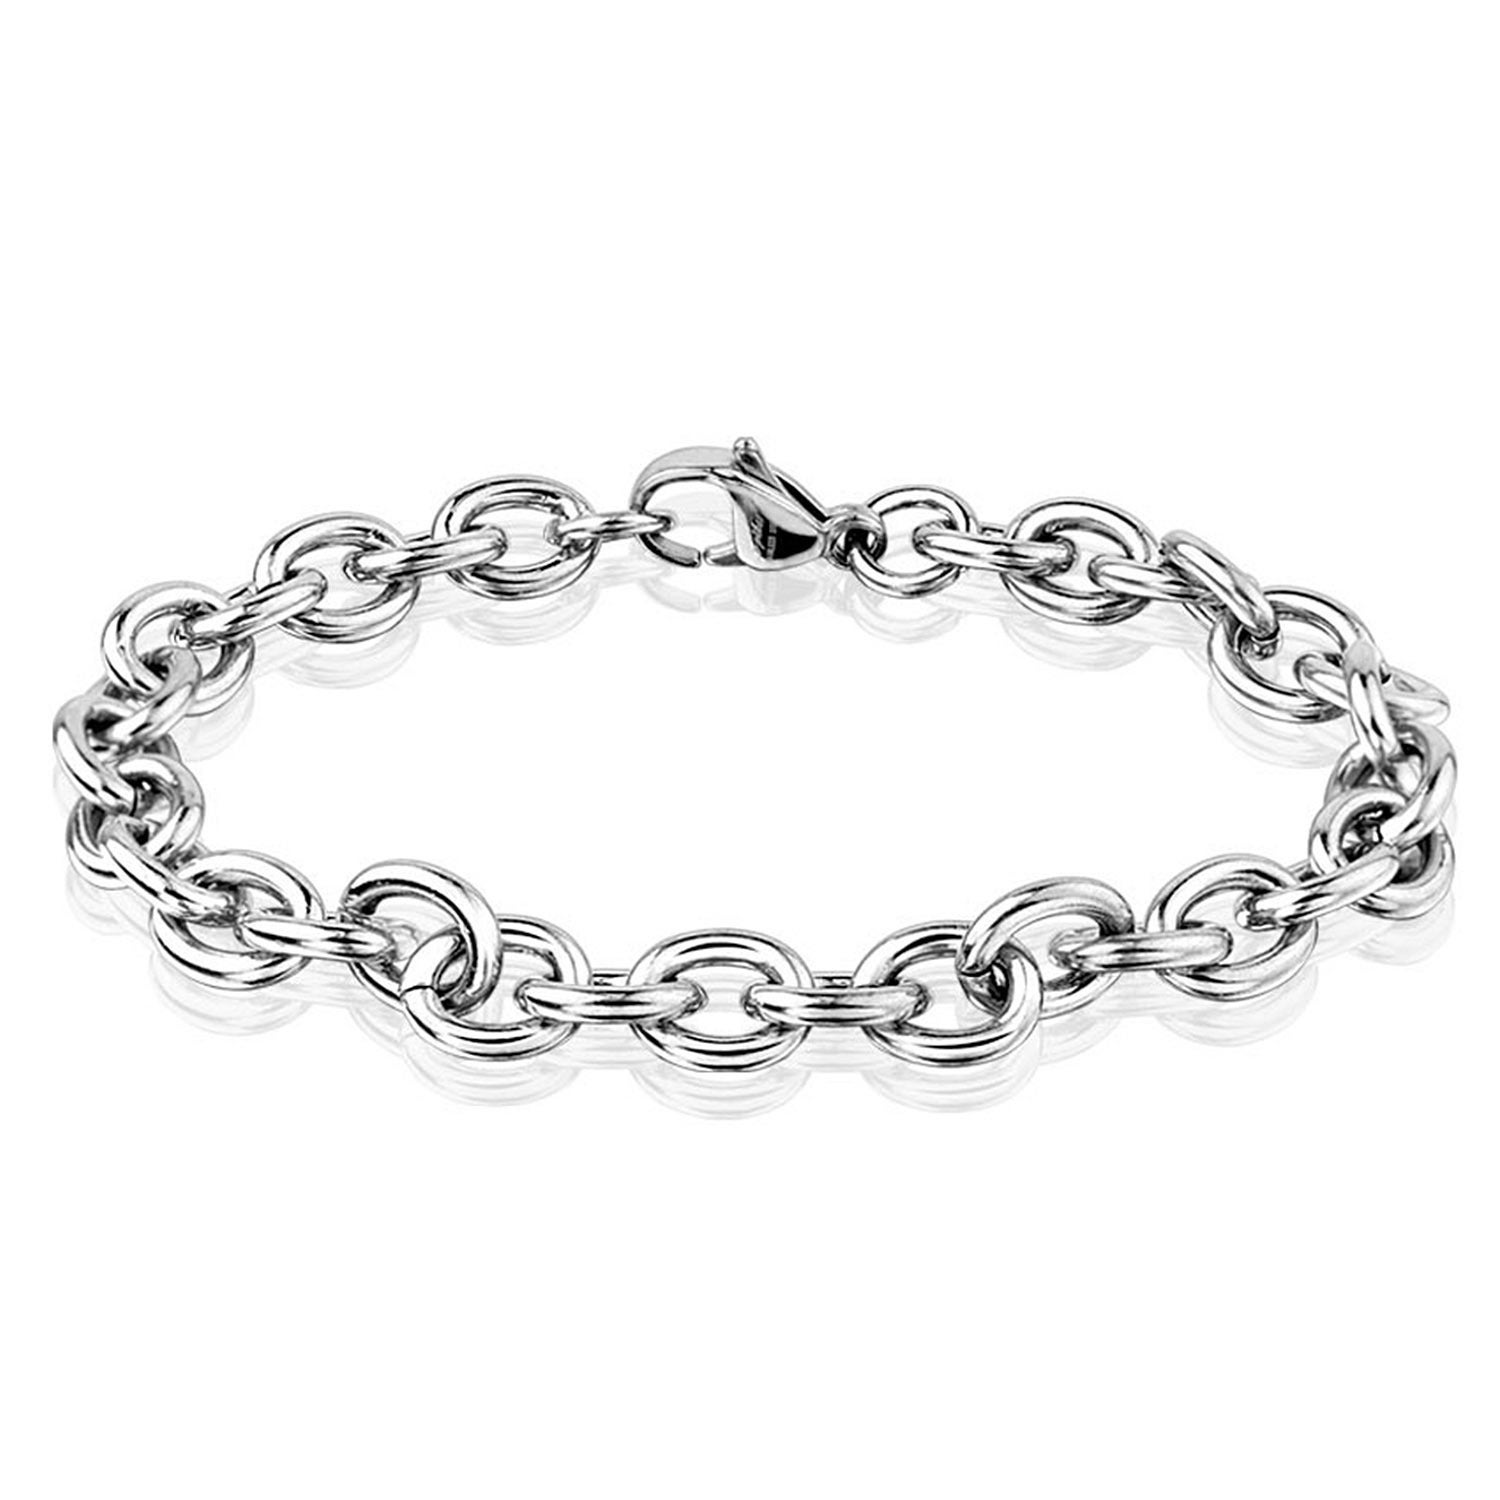 Men S Polished Stainless Steel Chain Bracelet 8mm 8 Inches Free Shipping On Orders Over 45 11320075